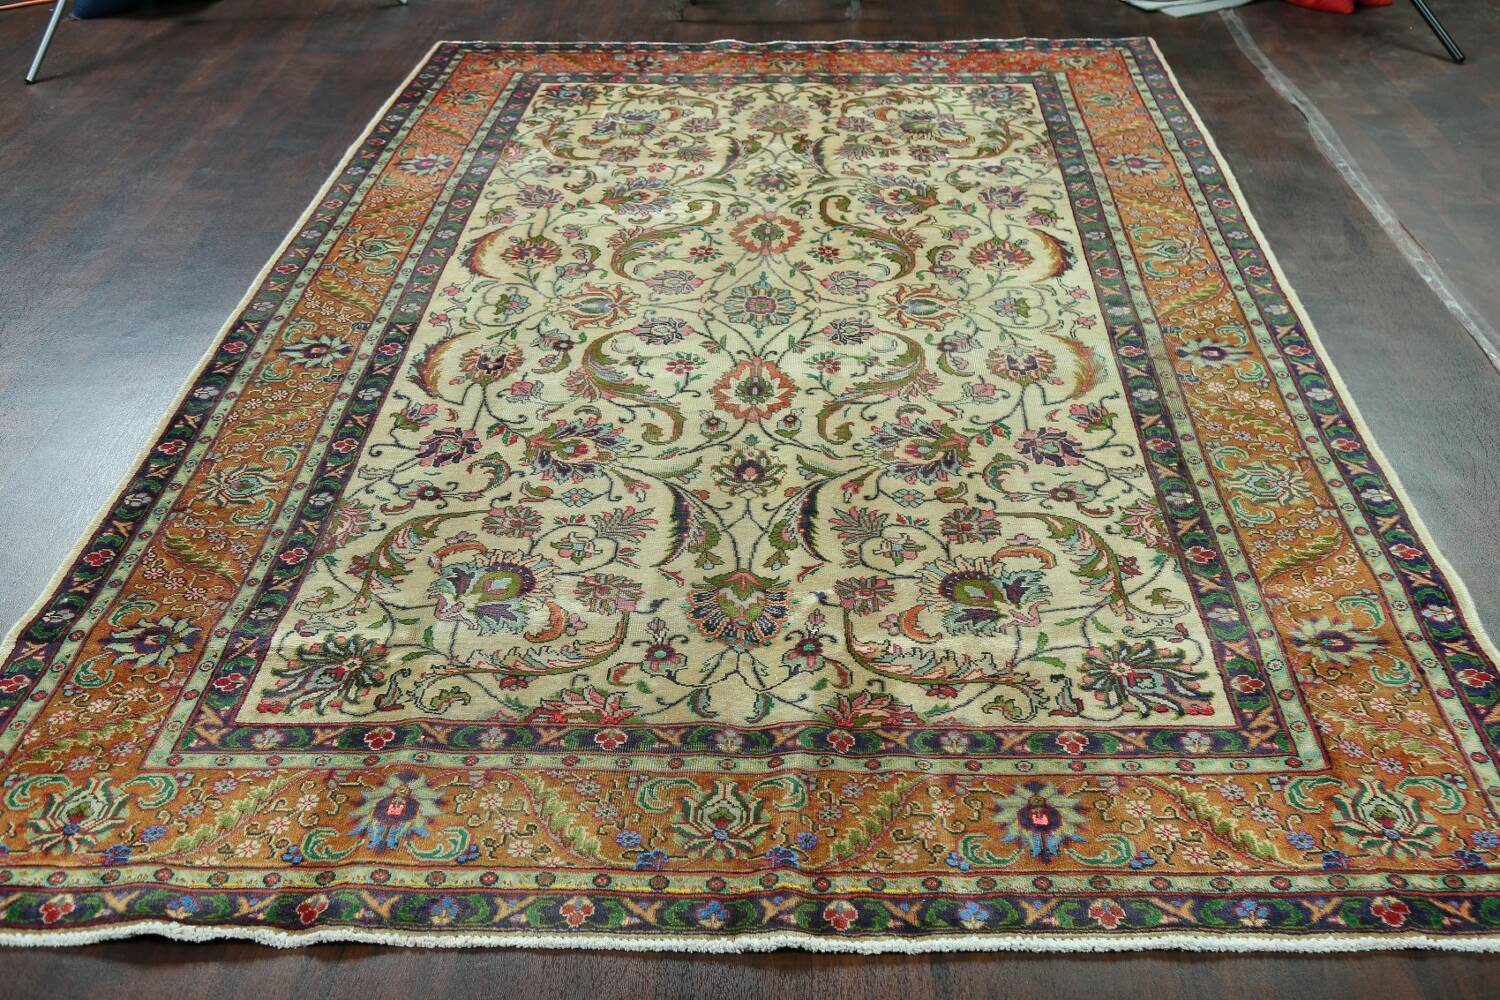 Antique All-Over Floral Tabriz Persian Area Rug 7x11 image 15